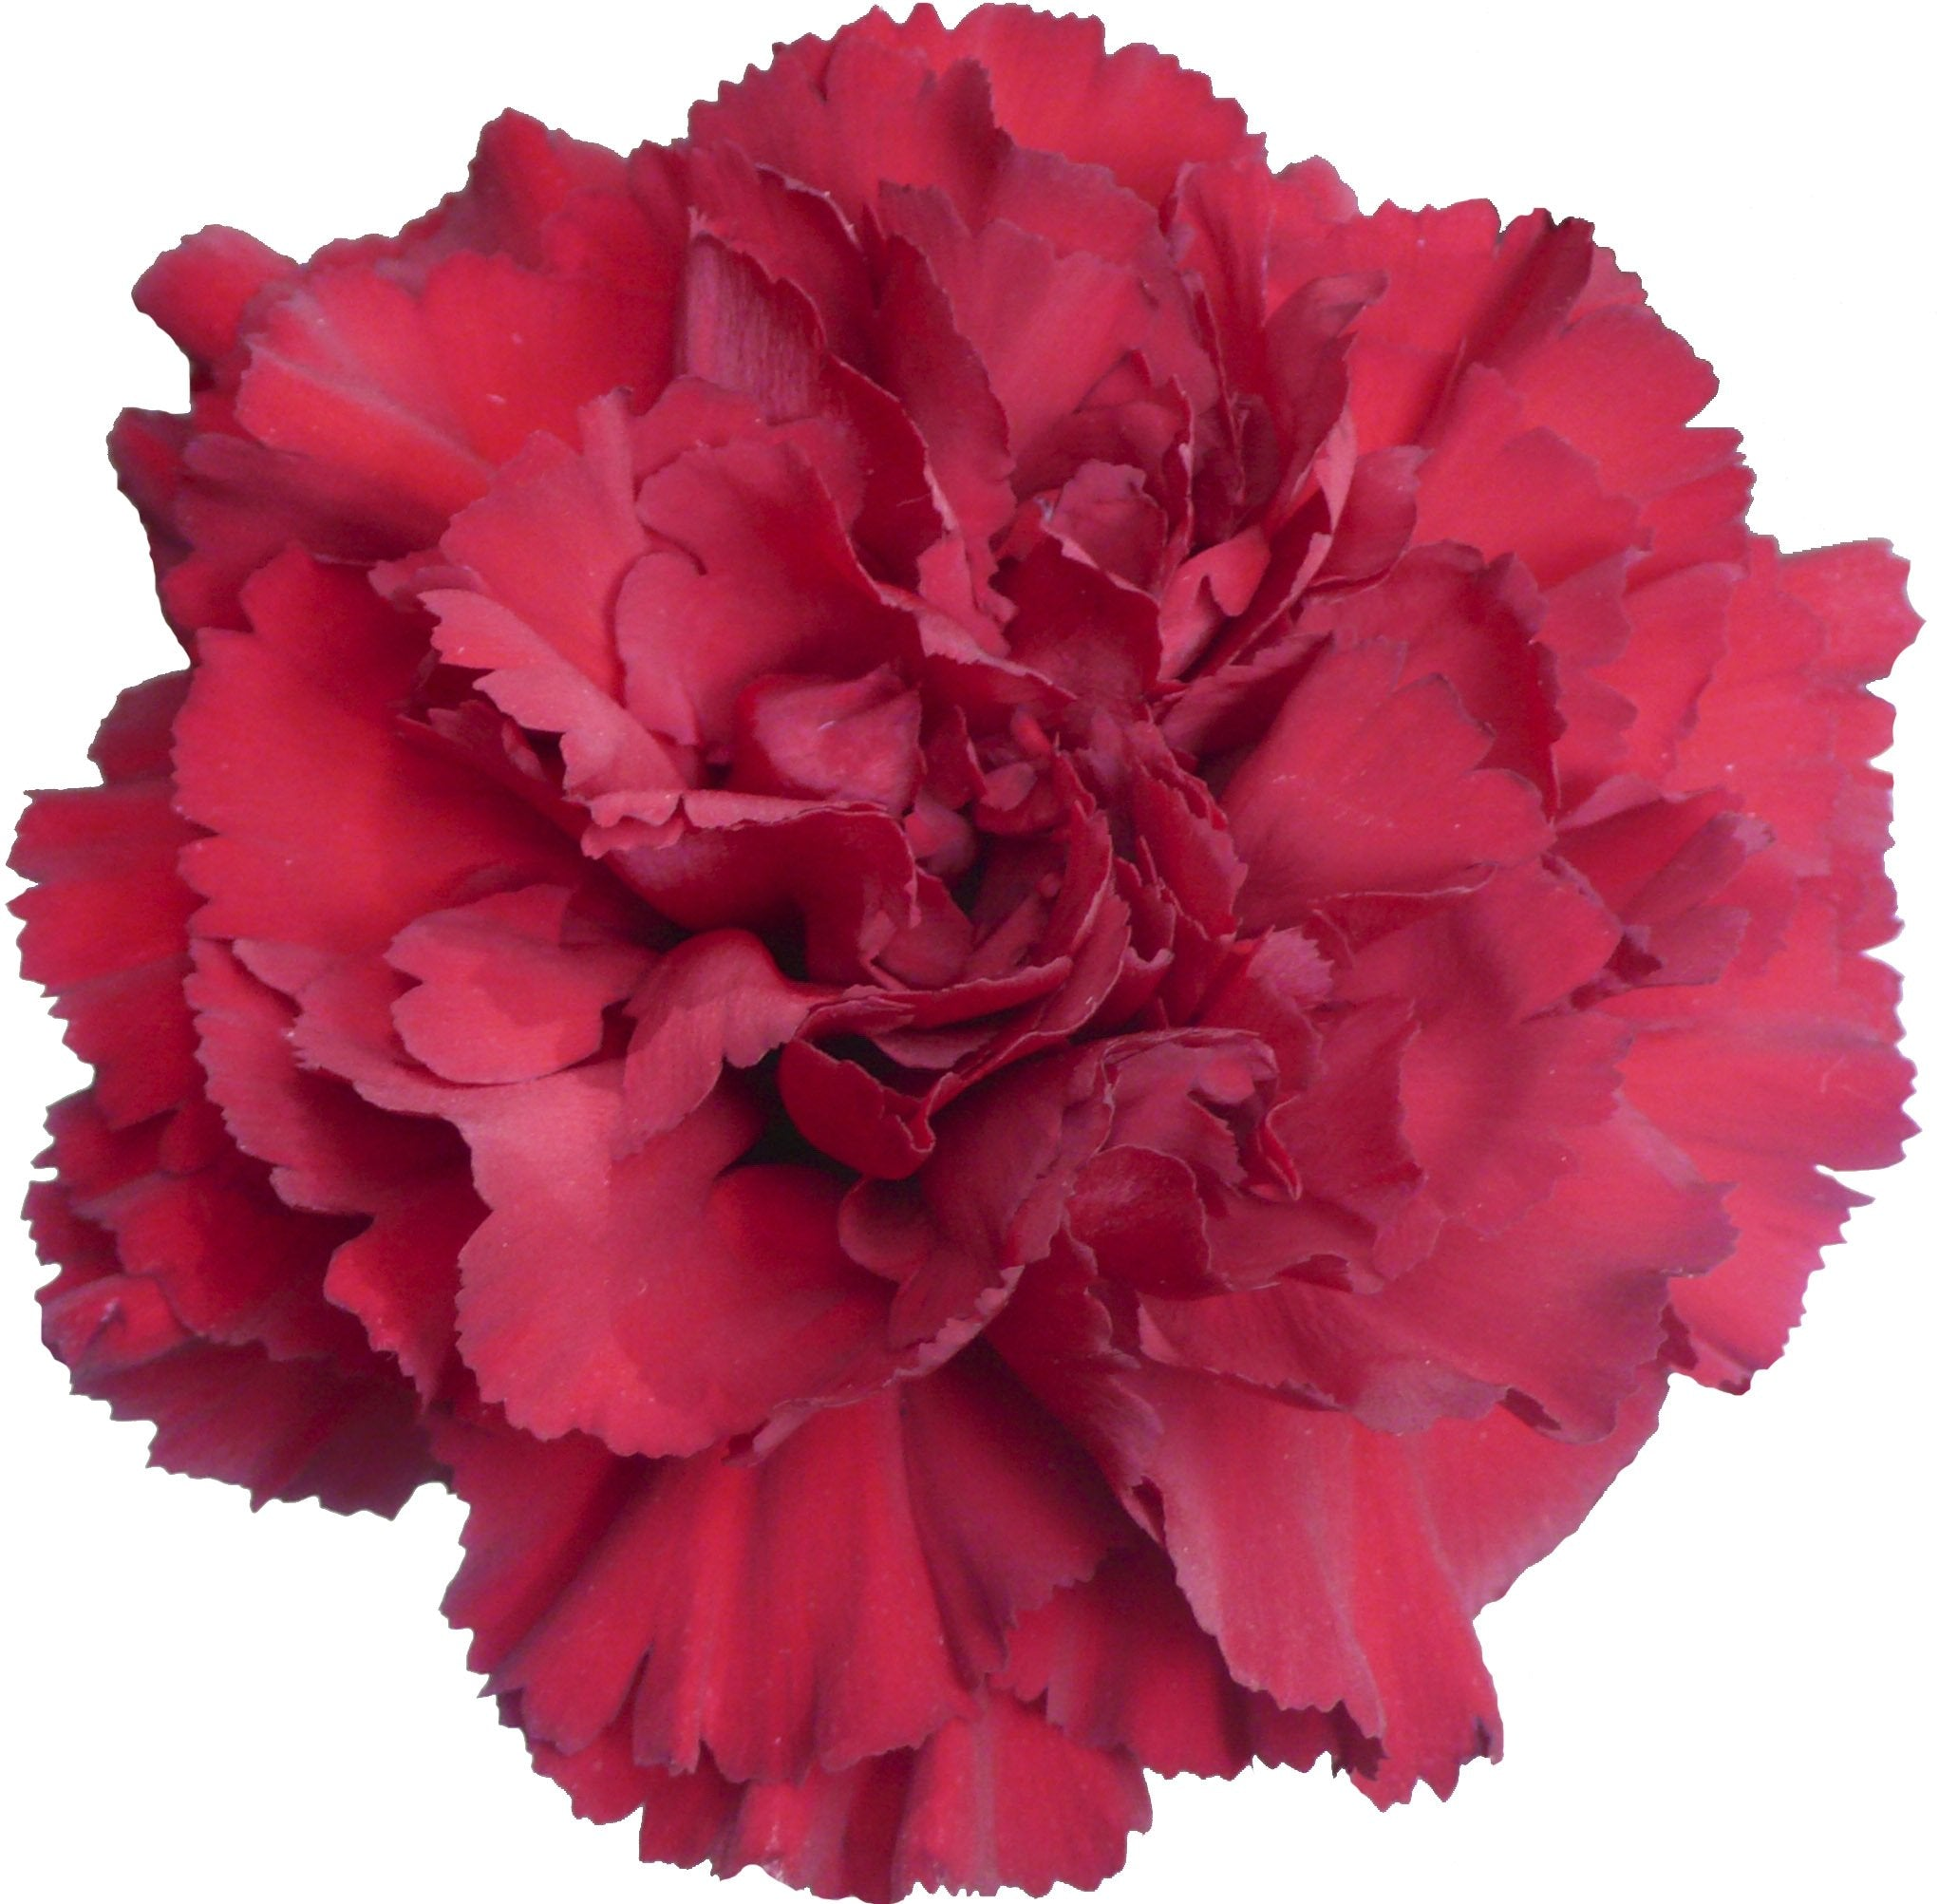 Carnations Hot Pink (200 stems) - Bloomsfully Wholesale Flowers